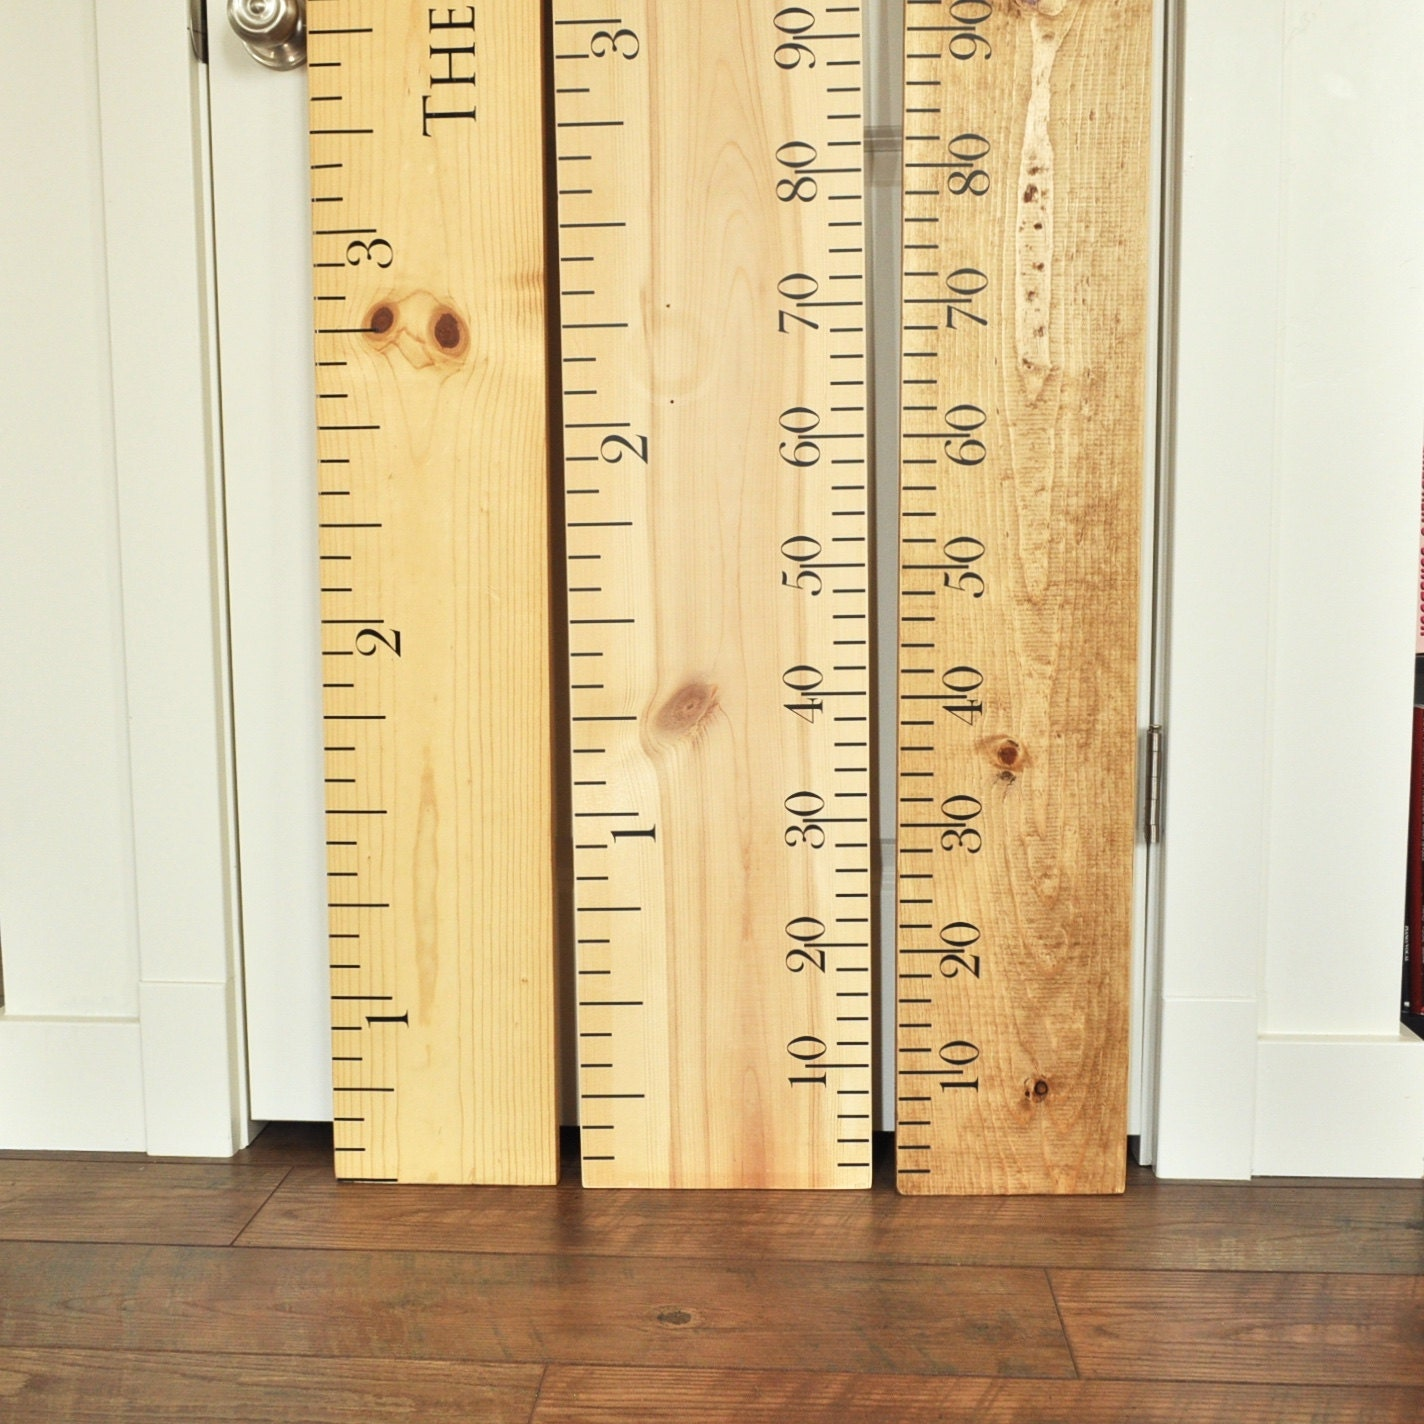 ruler growth chart kit diy project oversized wood ruler. Black Bedroom Furniture Sets. Home Design Ideas